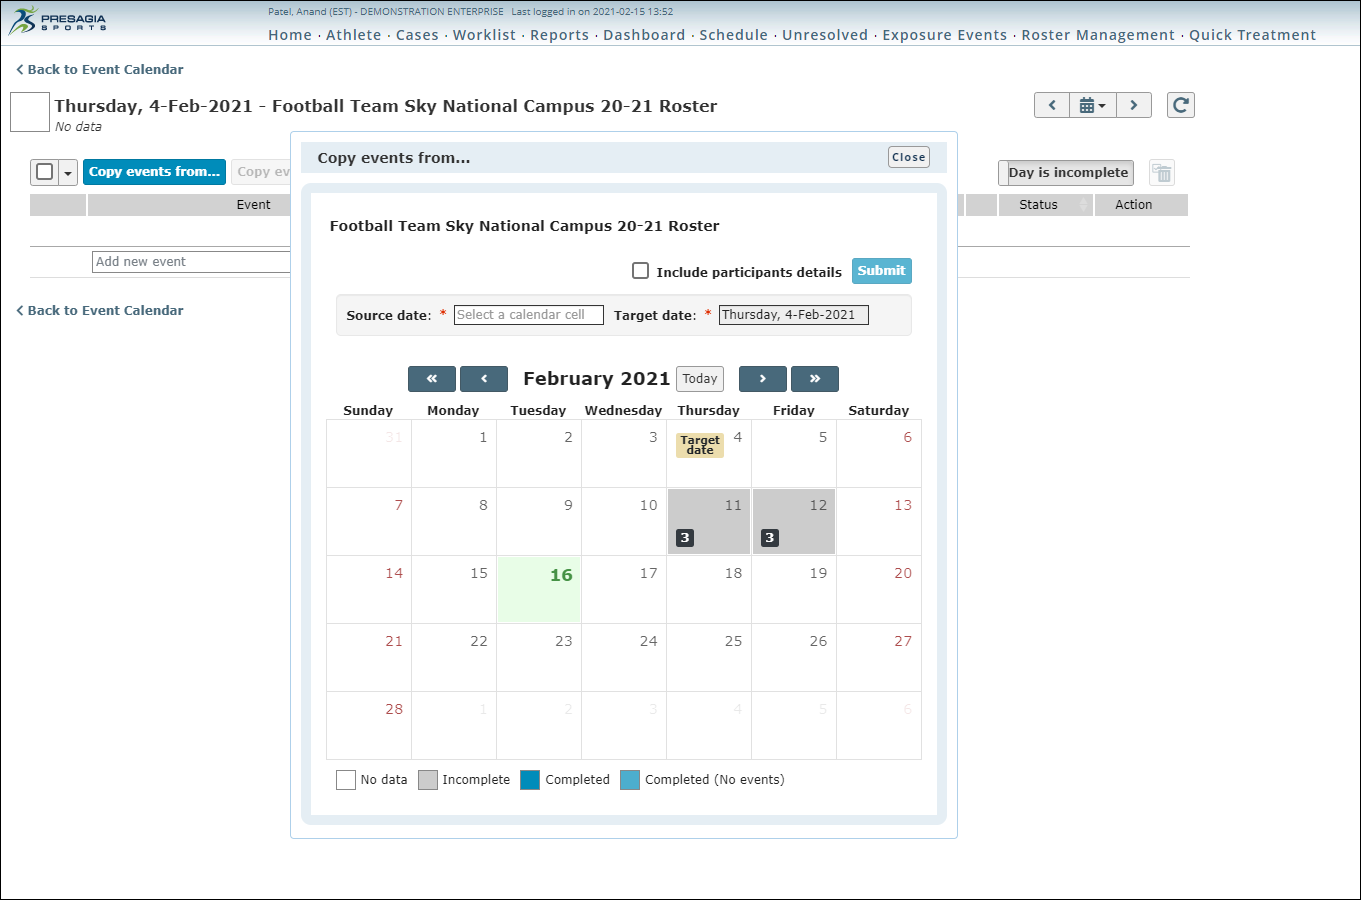 Screenshot of events roster within the Exposure and Participation feature of Presagia Sports